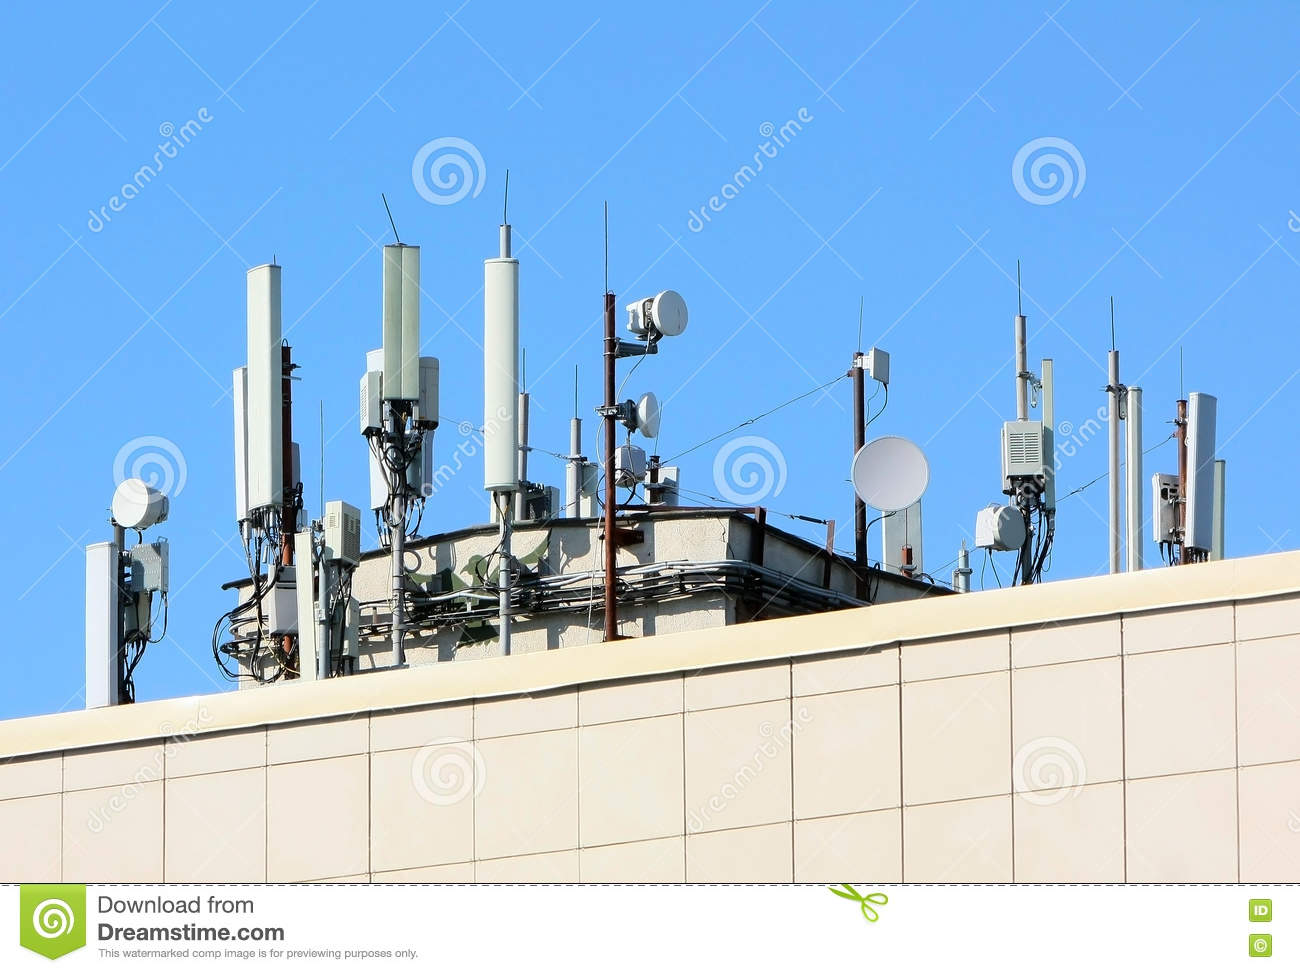 Wonderful Many Antennas On The Roof Of Business Center. Royalty Free Stock Photos